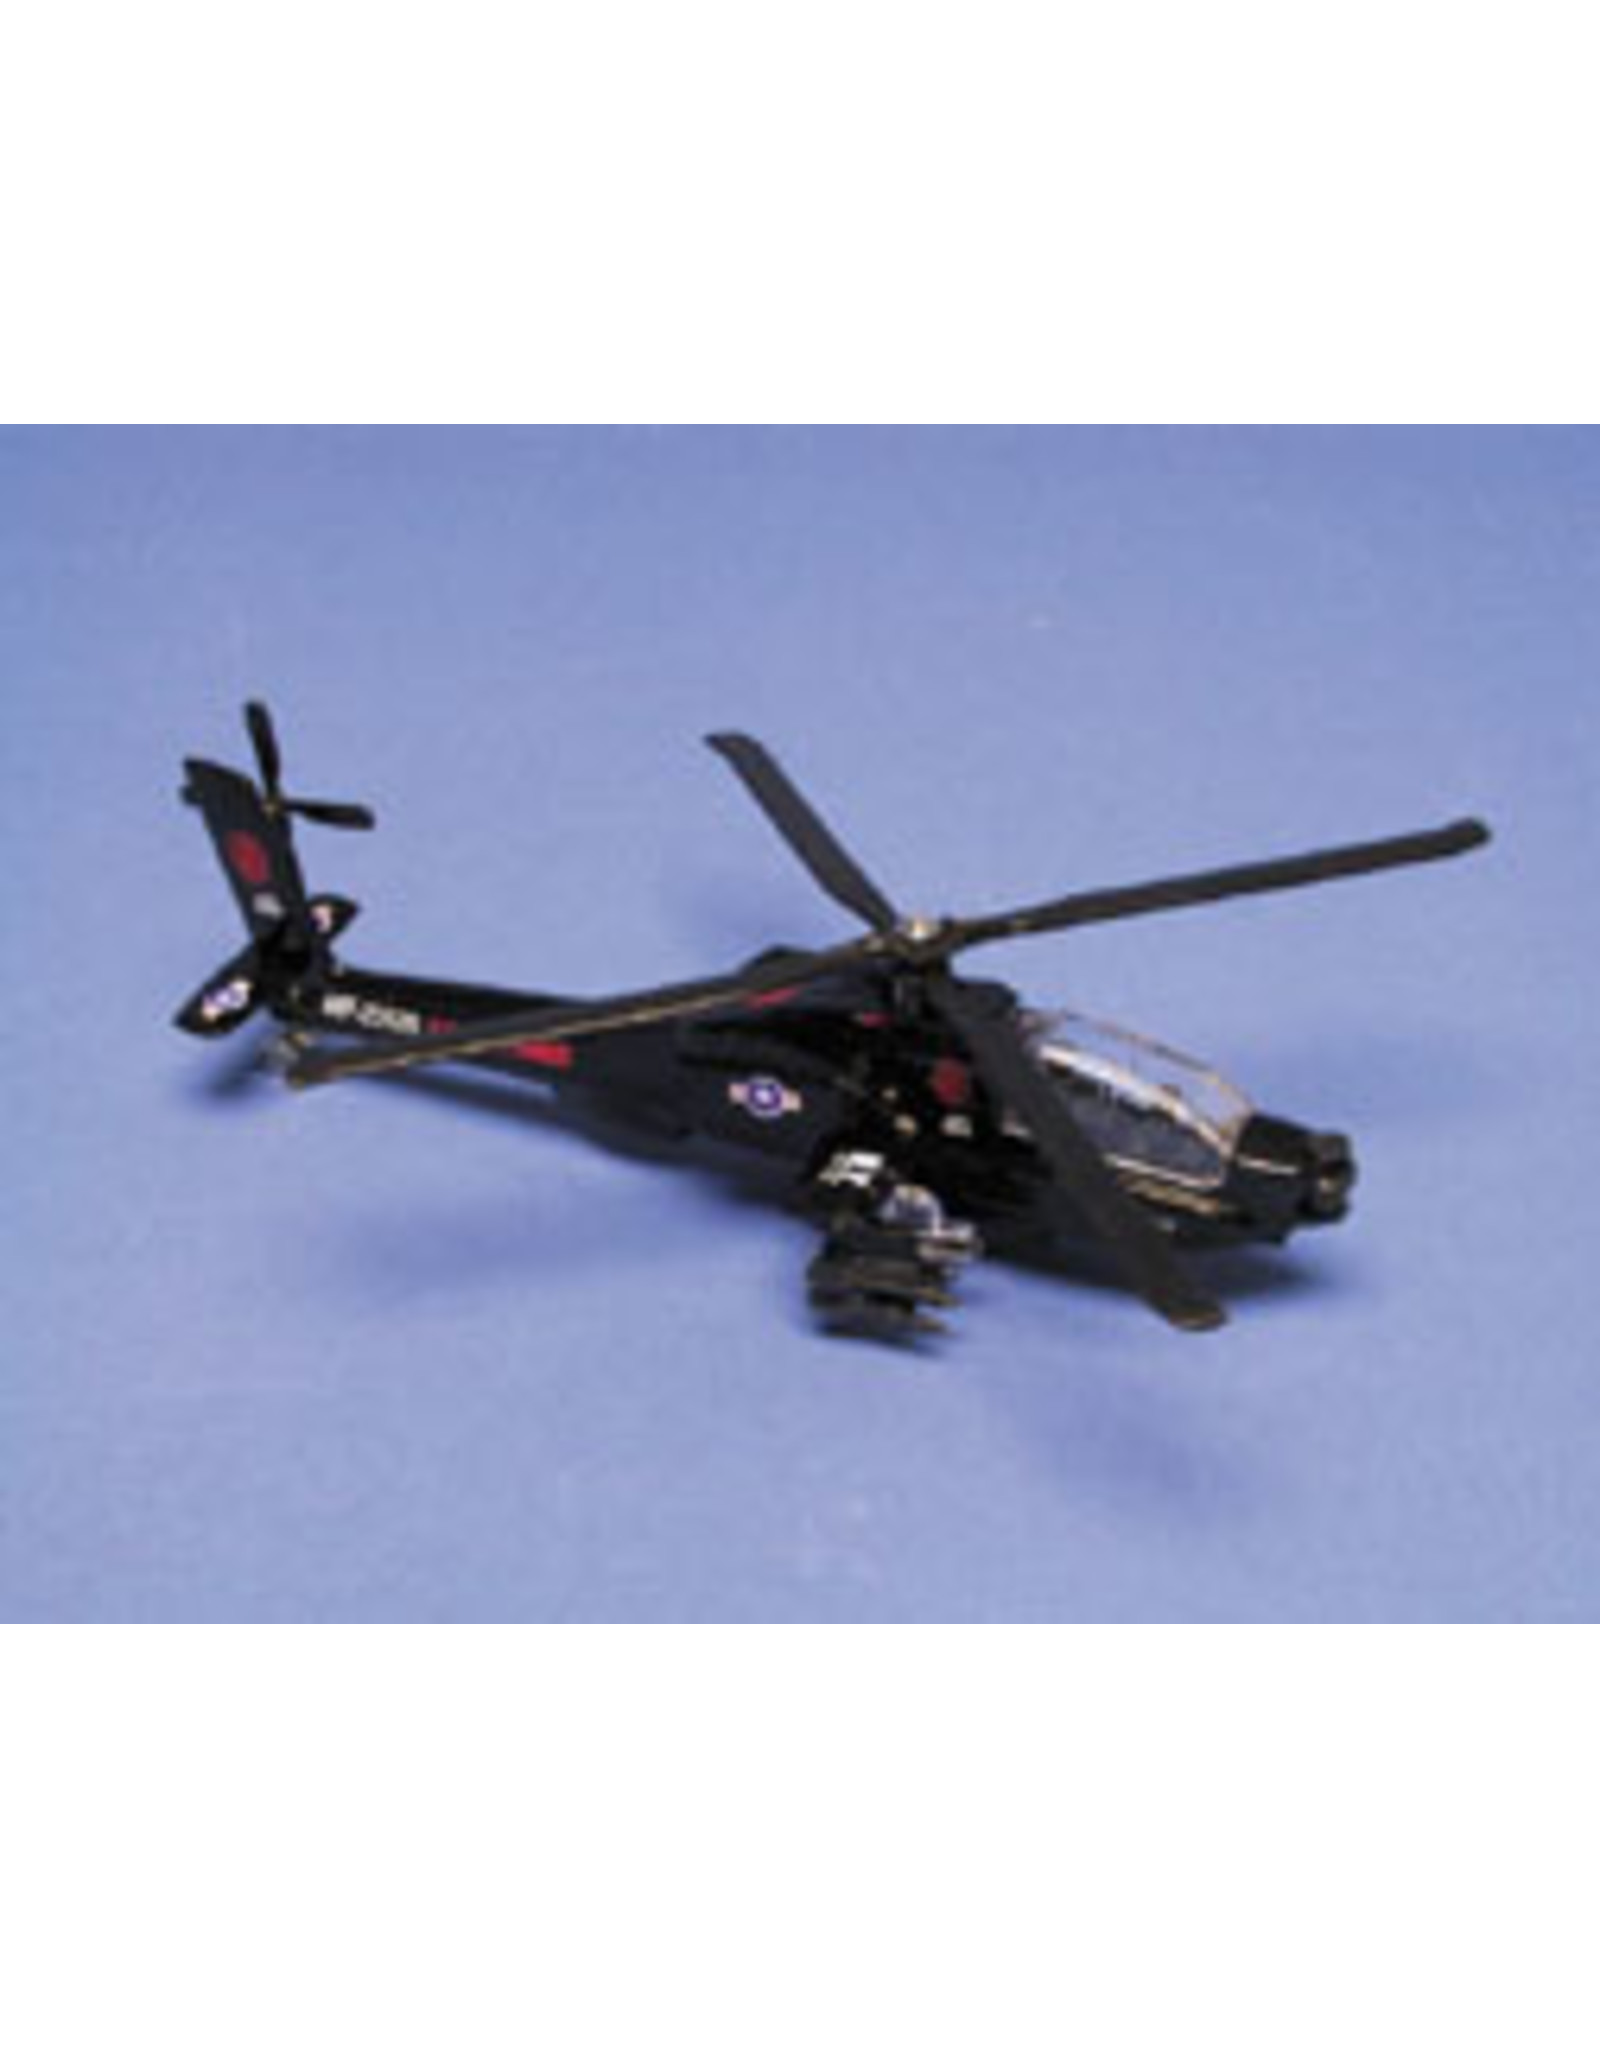 AH-64 Apache Helicopter